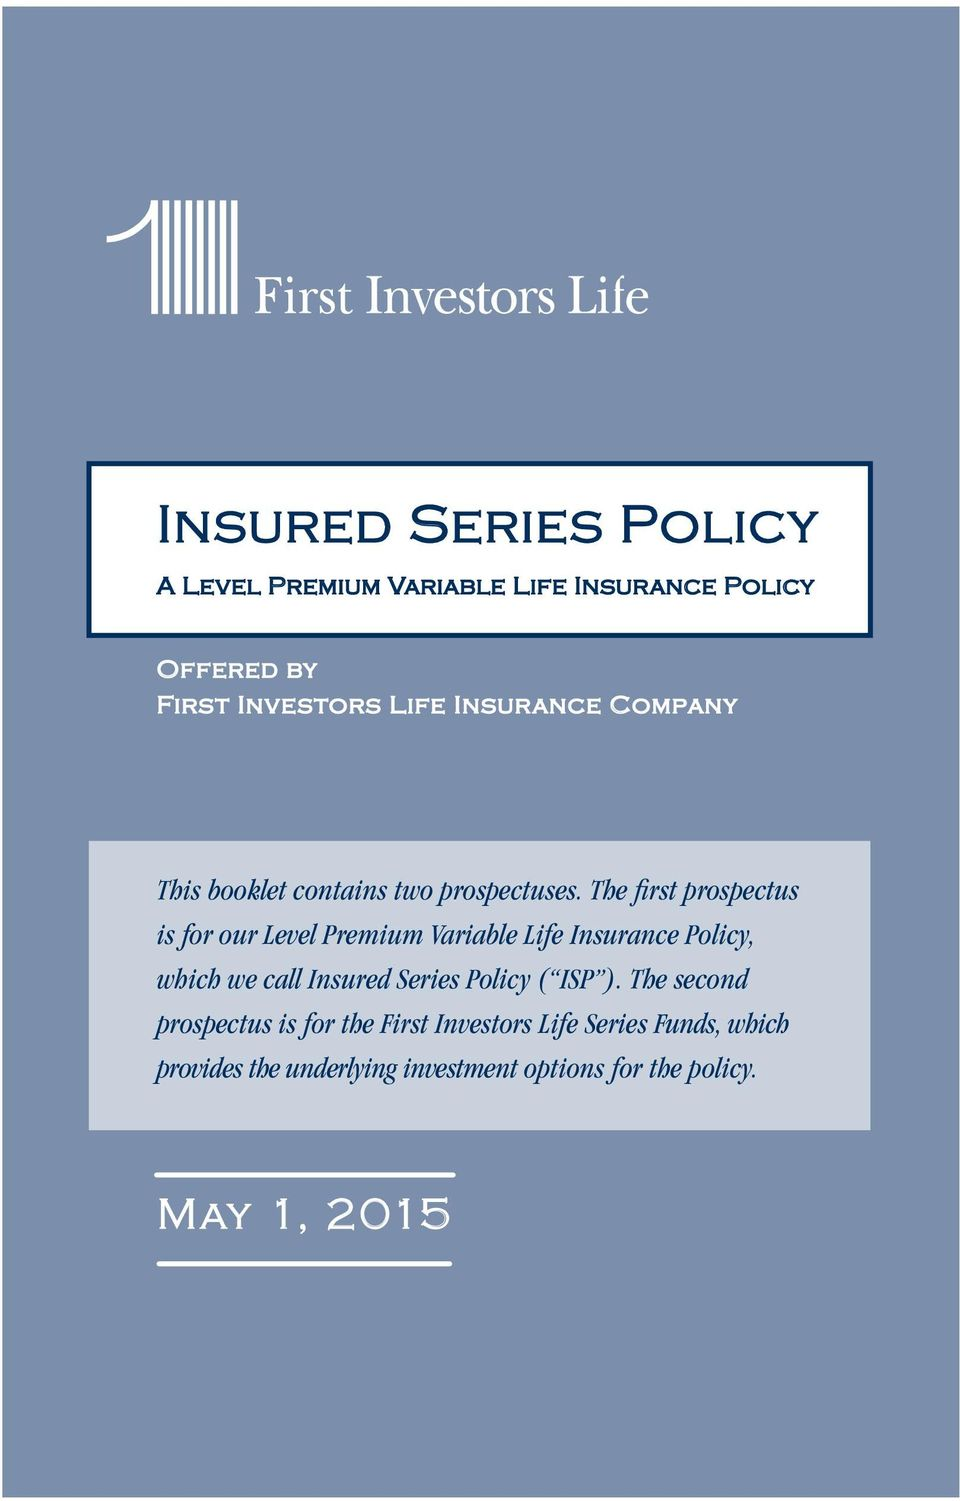 The first prospectus is for our Level Premium Variable Life Insurance Policy, which we call Insured Series